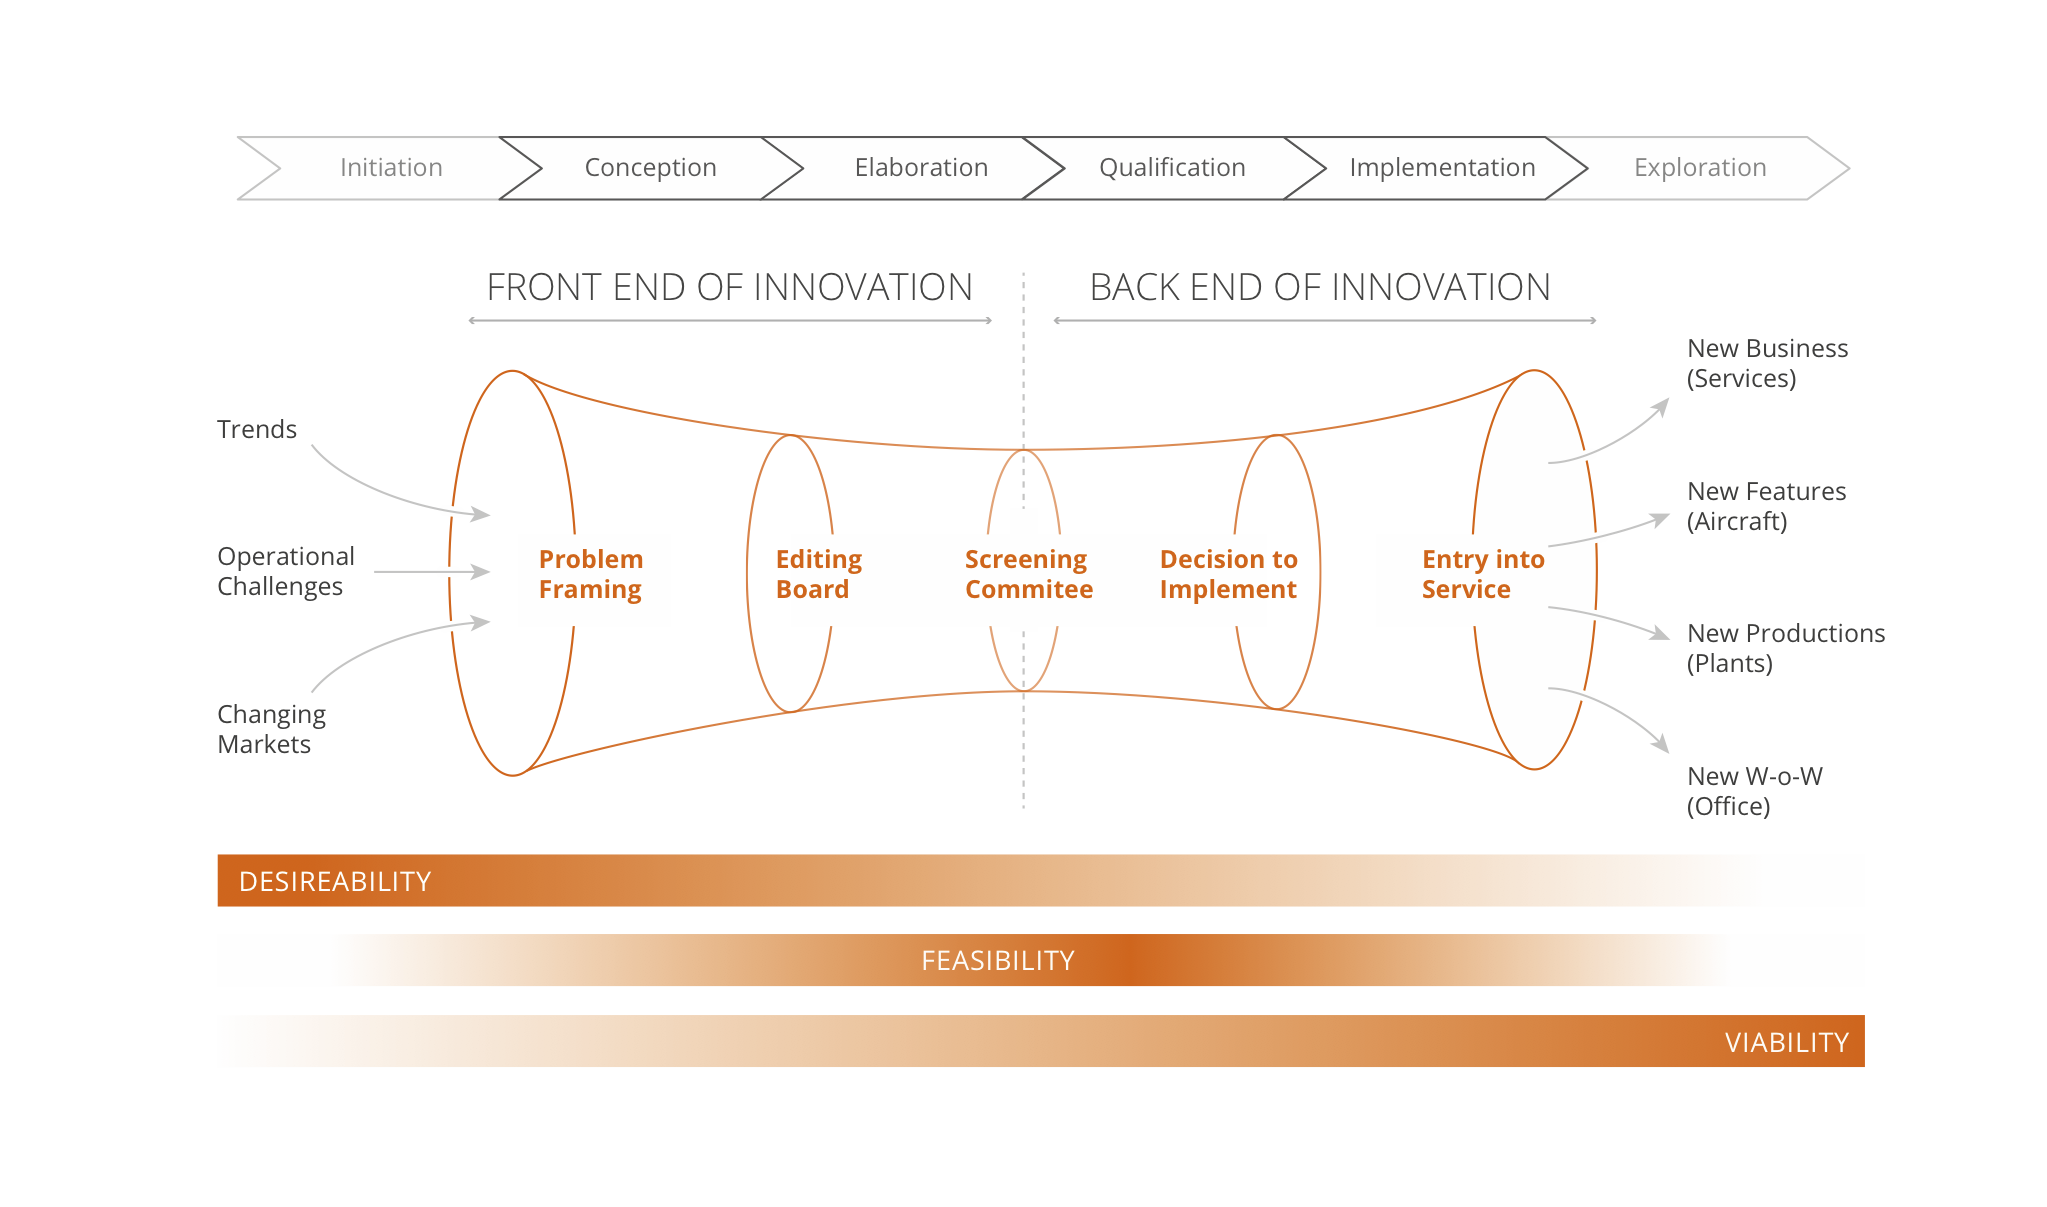 airbus-innovation-funnel.png